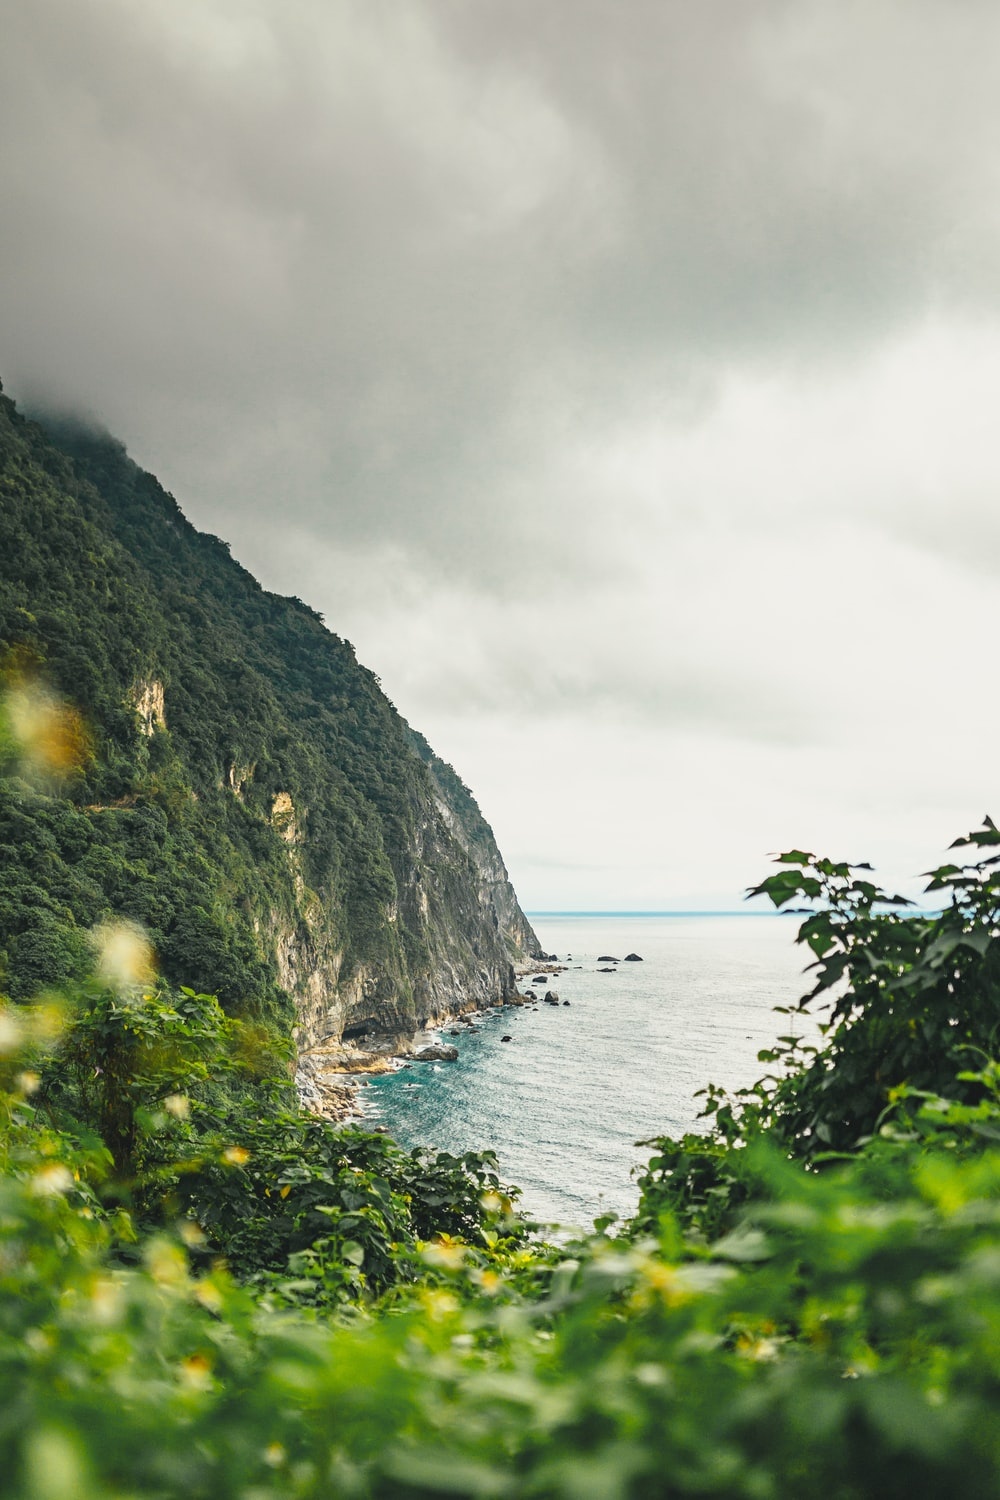 landscape photography of island beside body of water